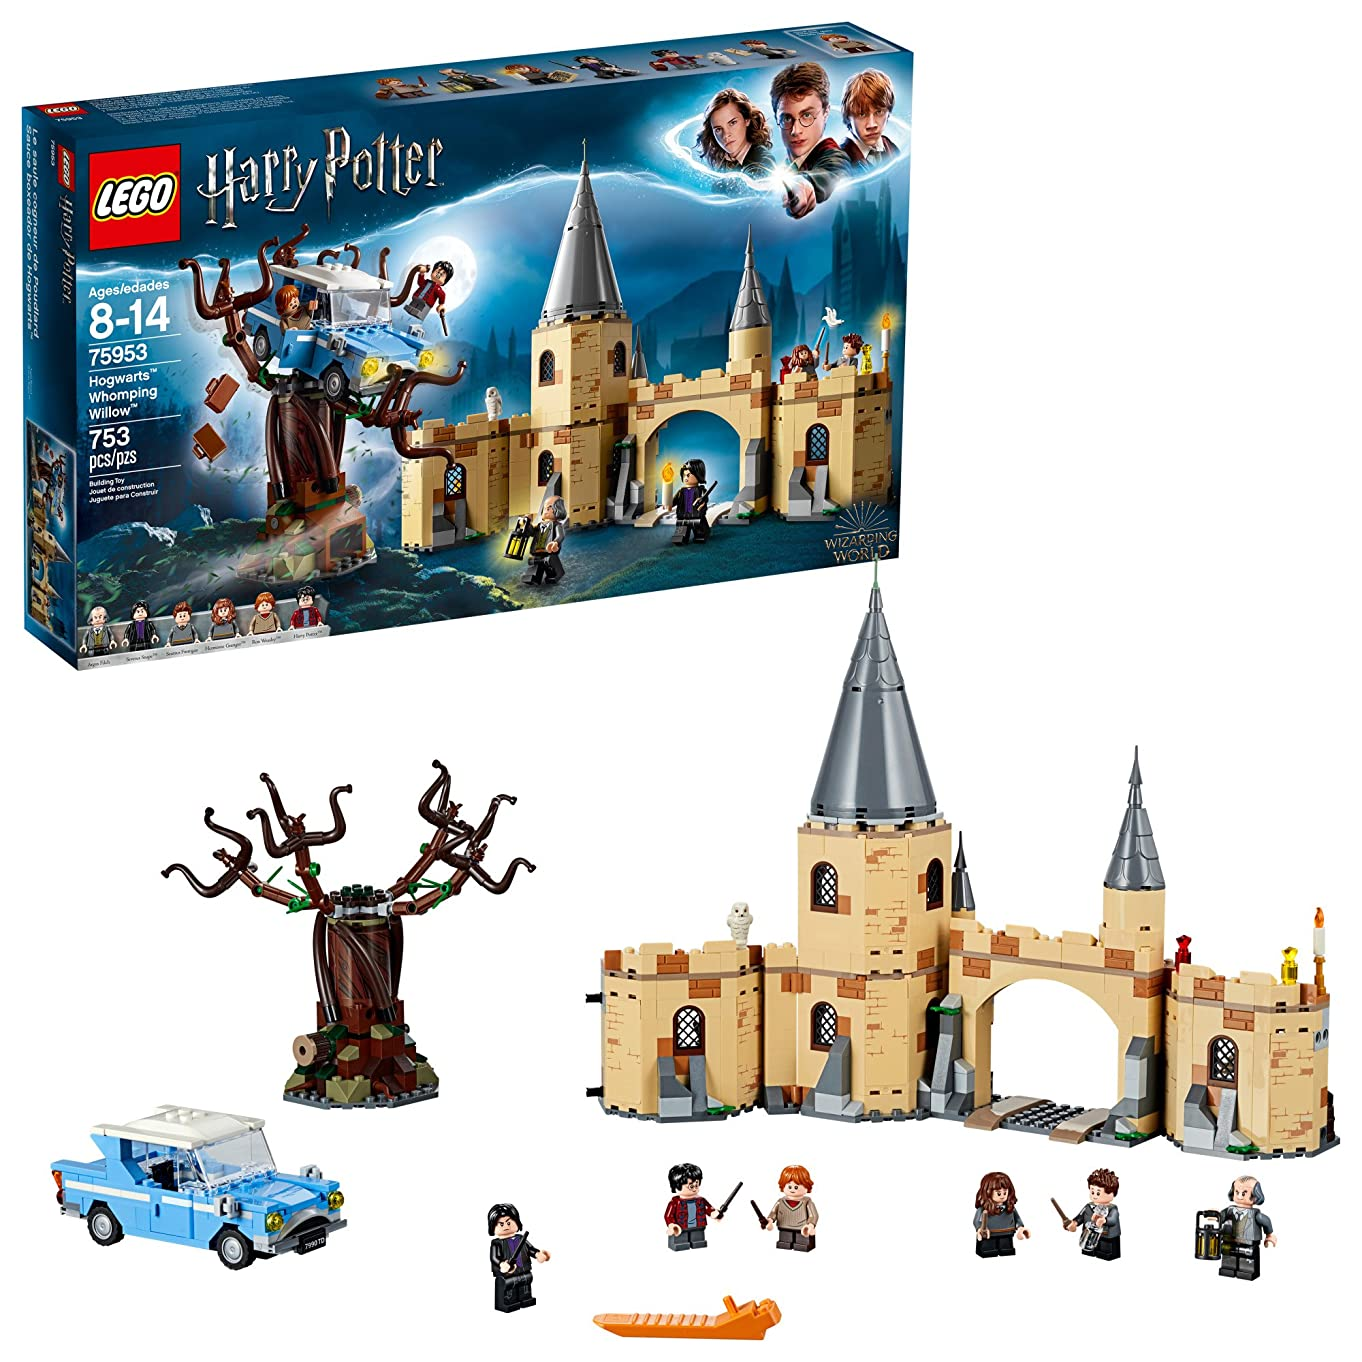 LEGO Harry Potter and The Chamber of Secrets Hogwarts Whomping Willow 75953 Magic Toys Building Kit, Prisoner of Azkaban, Hedwig, Hermoine Granger and Severus Snape (753 Pieces)